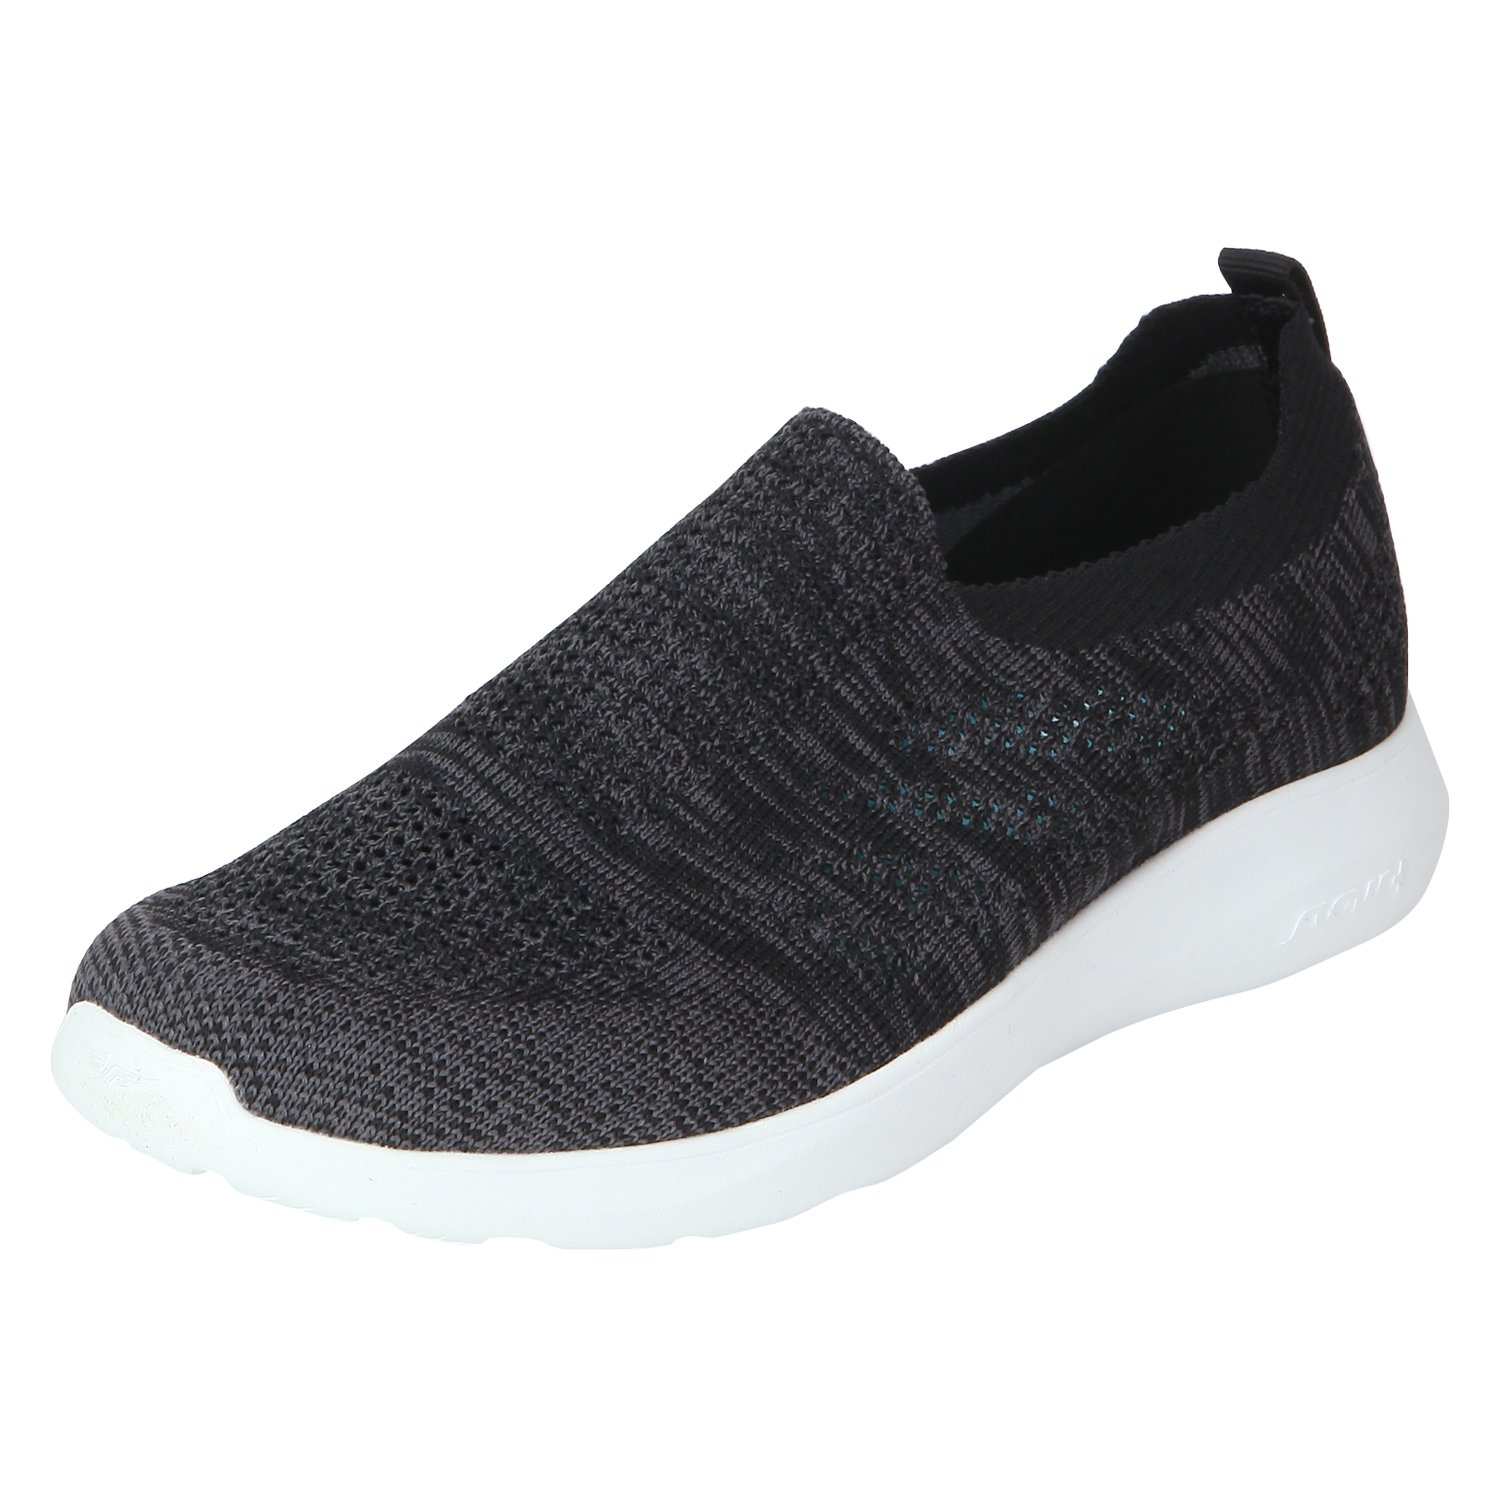 Red Tape Women's Black Running Shoes